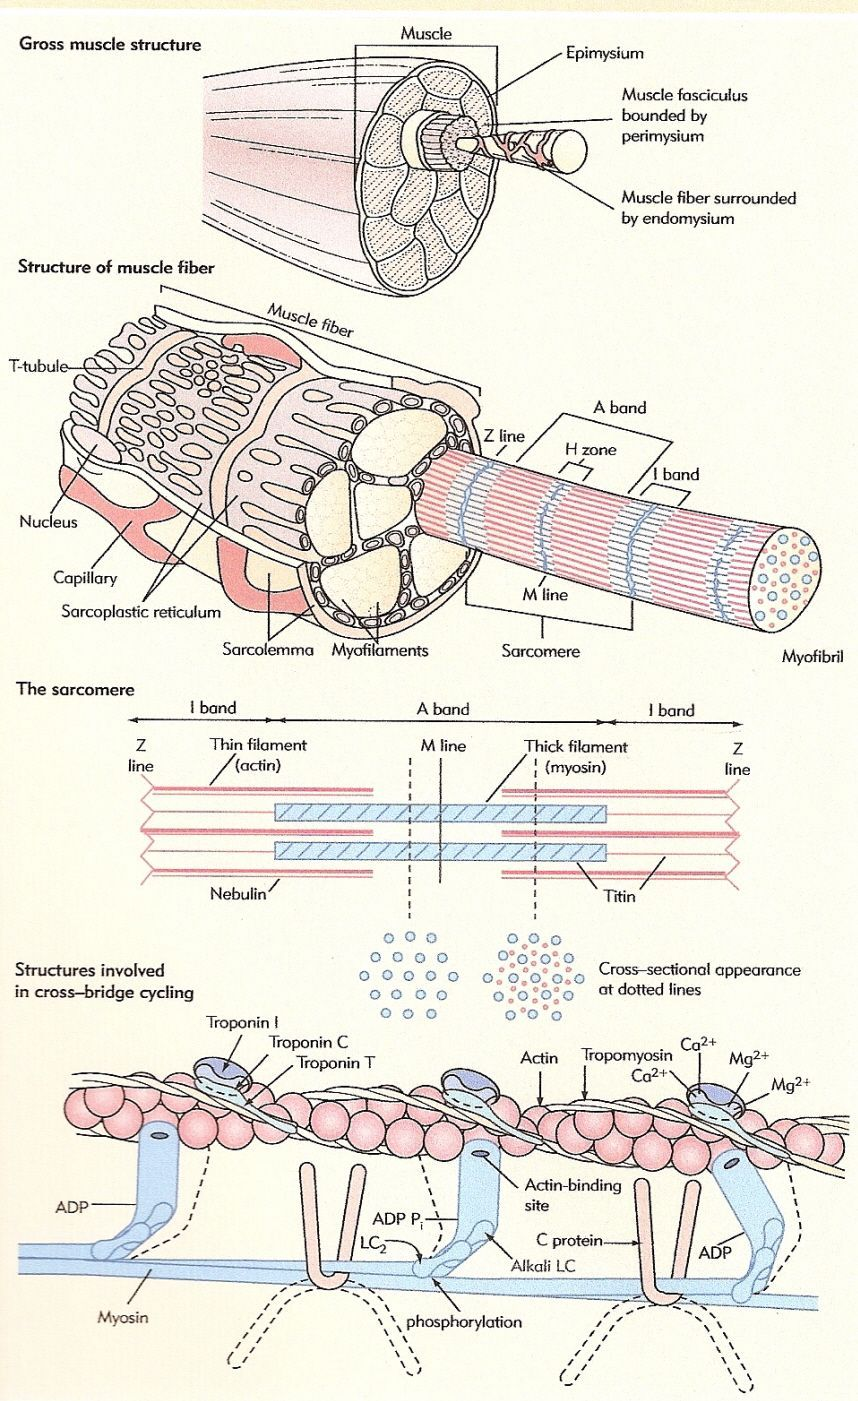 physiology resorces: skeletal muscle physiology | mcat | pinterest, Muscles